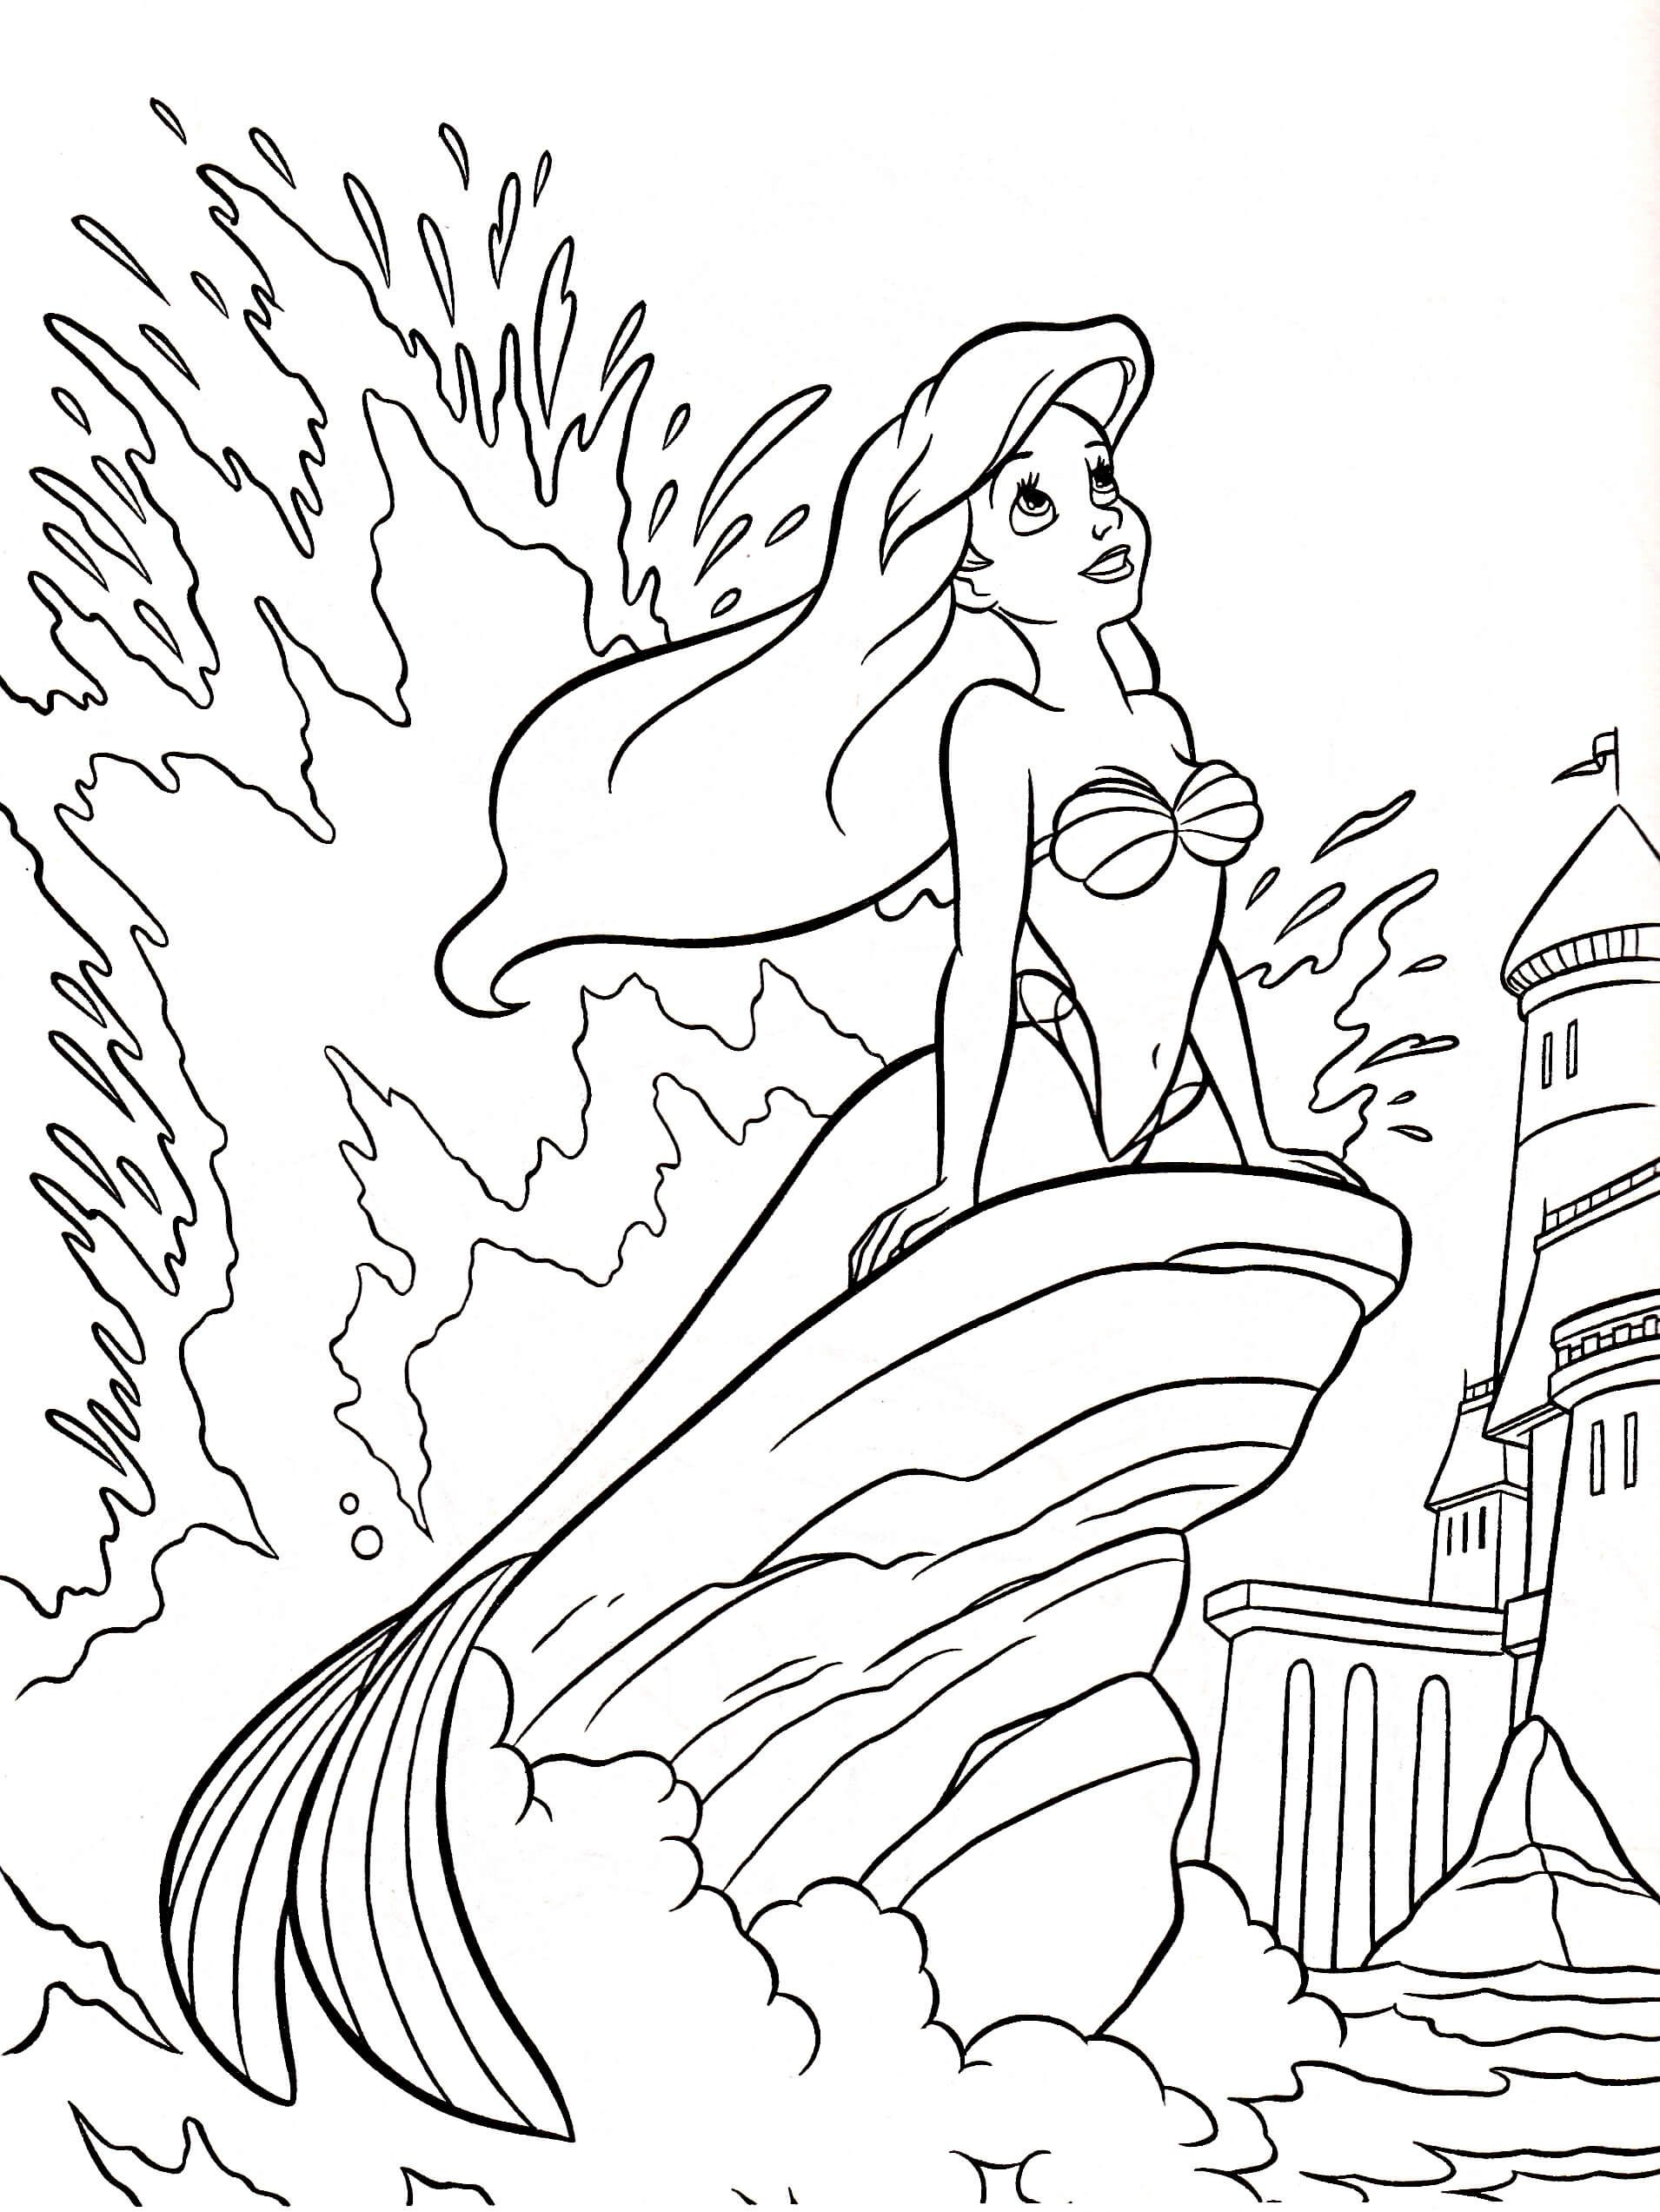 Disney Ariel Coloring Pages Colorables The Little Mermaid